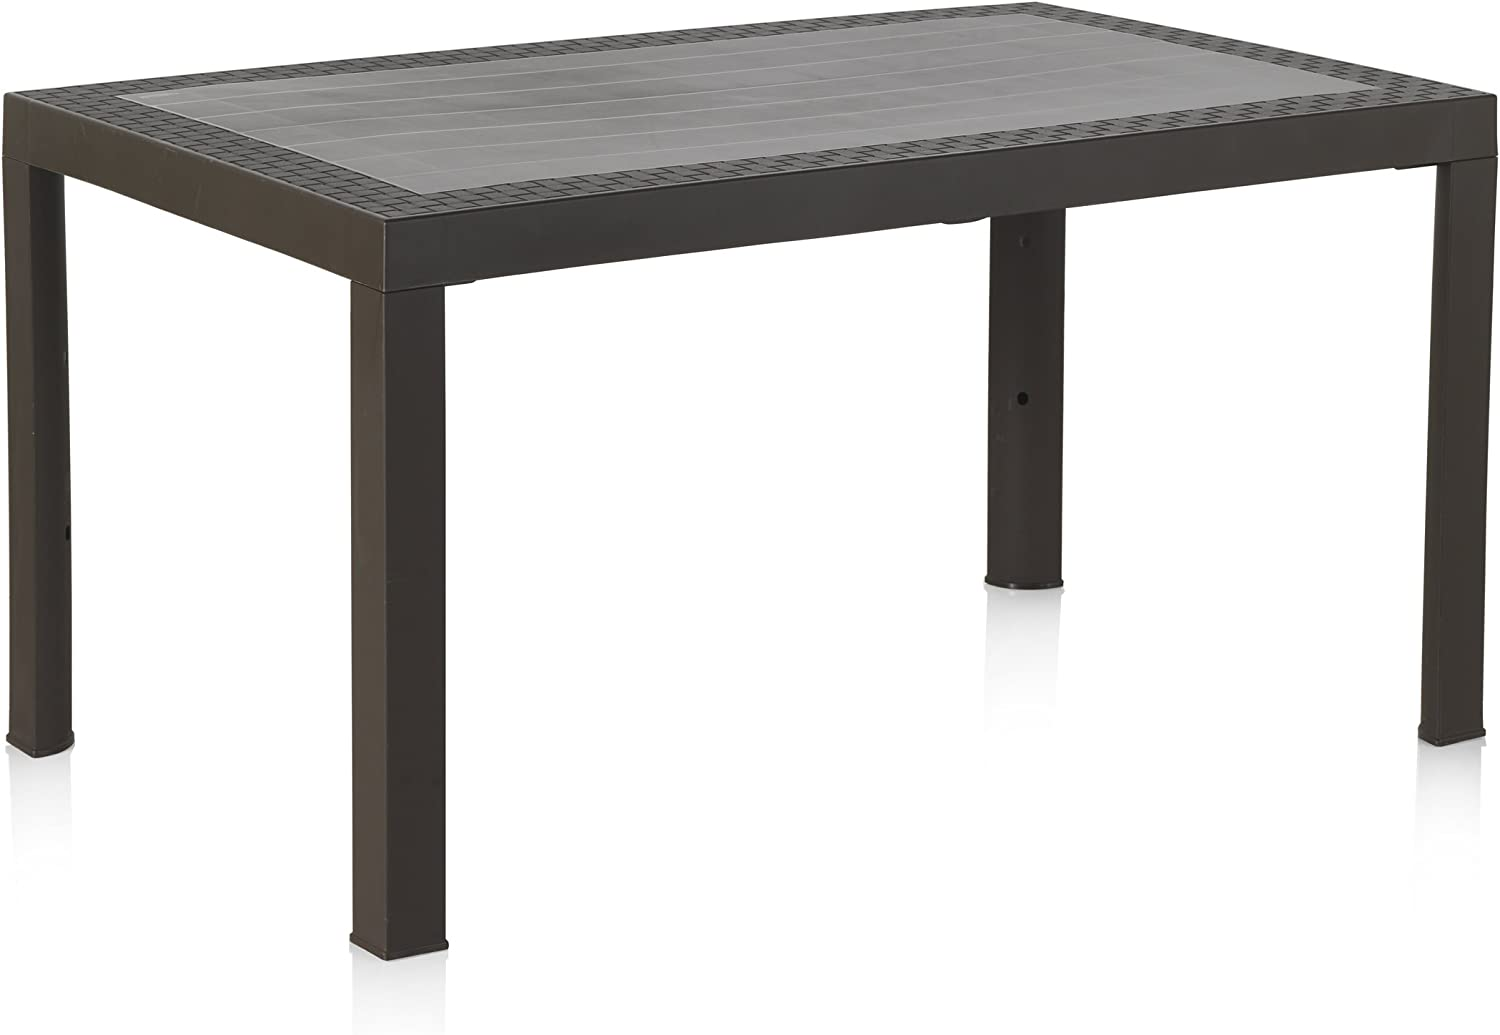 Sp berner - Dream wengue. mesa resina 140x85x73 cm